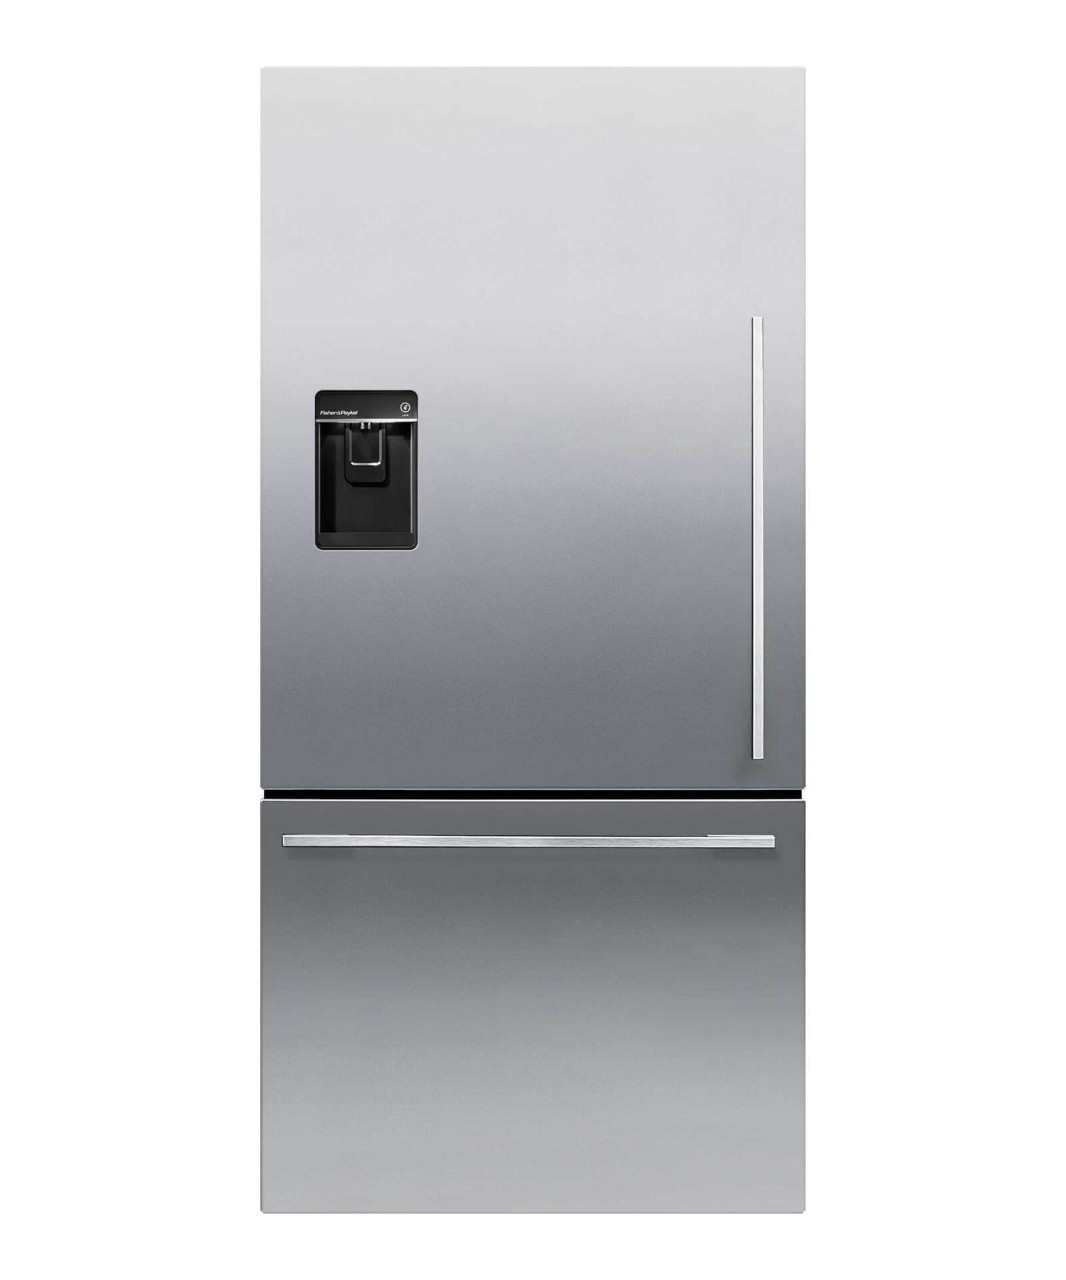 DISPLAY MODEL. Counter Depth Refrigerator 17 cu ft, Ice & Water